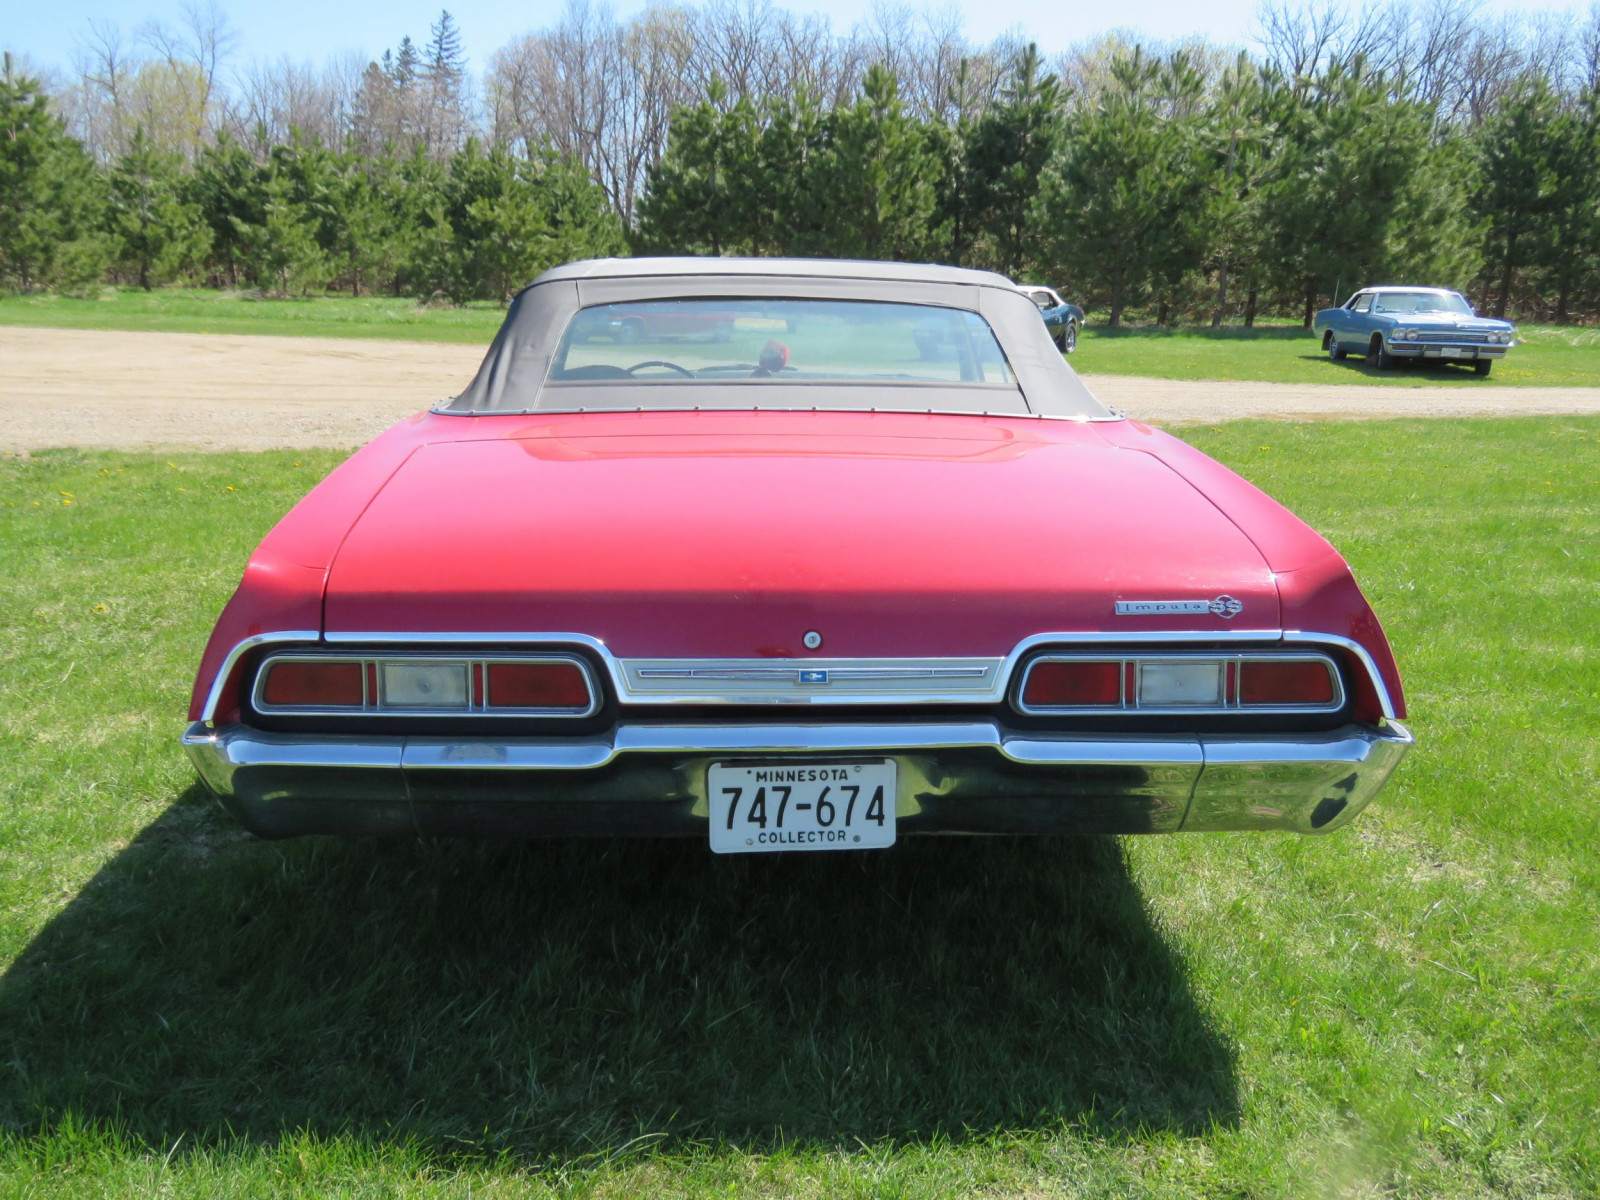 1967 Chevrolet Impala SS convertible - Image 9